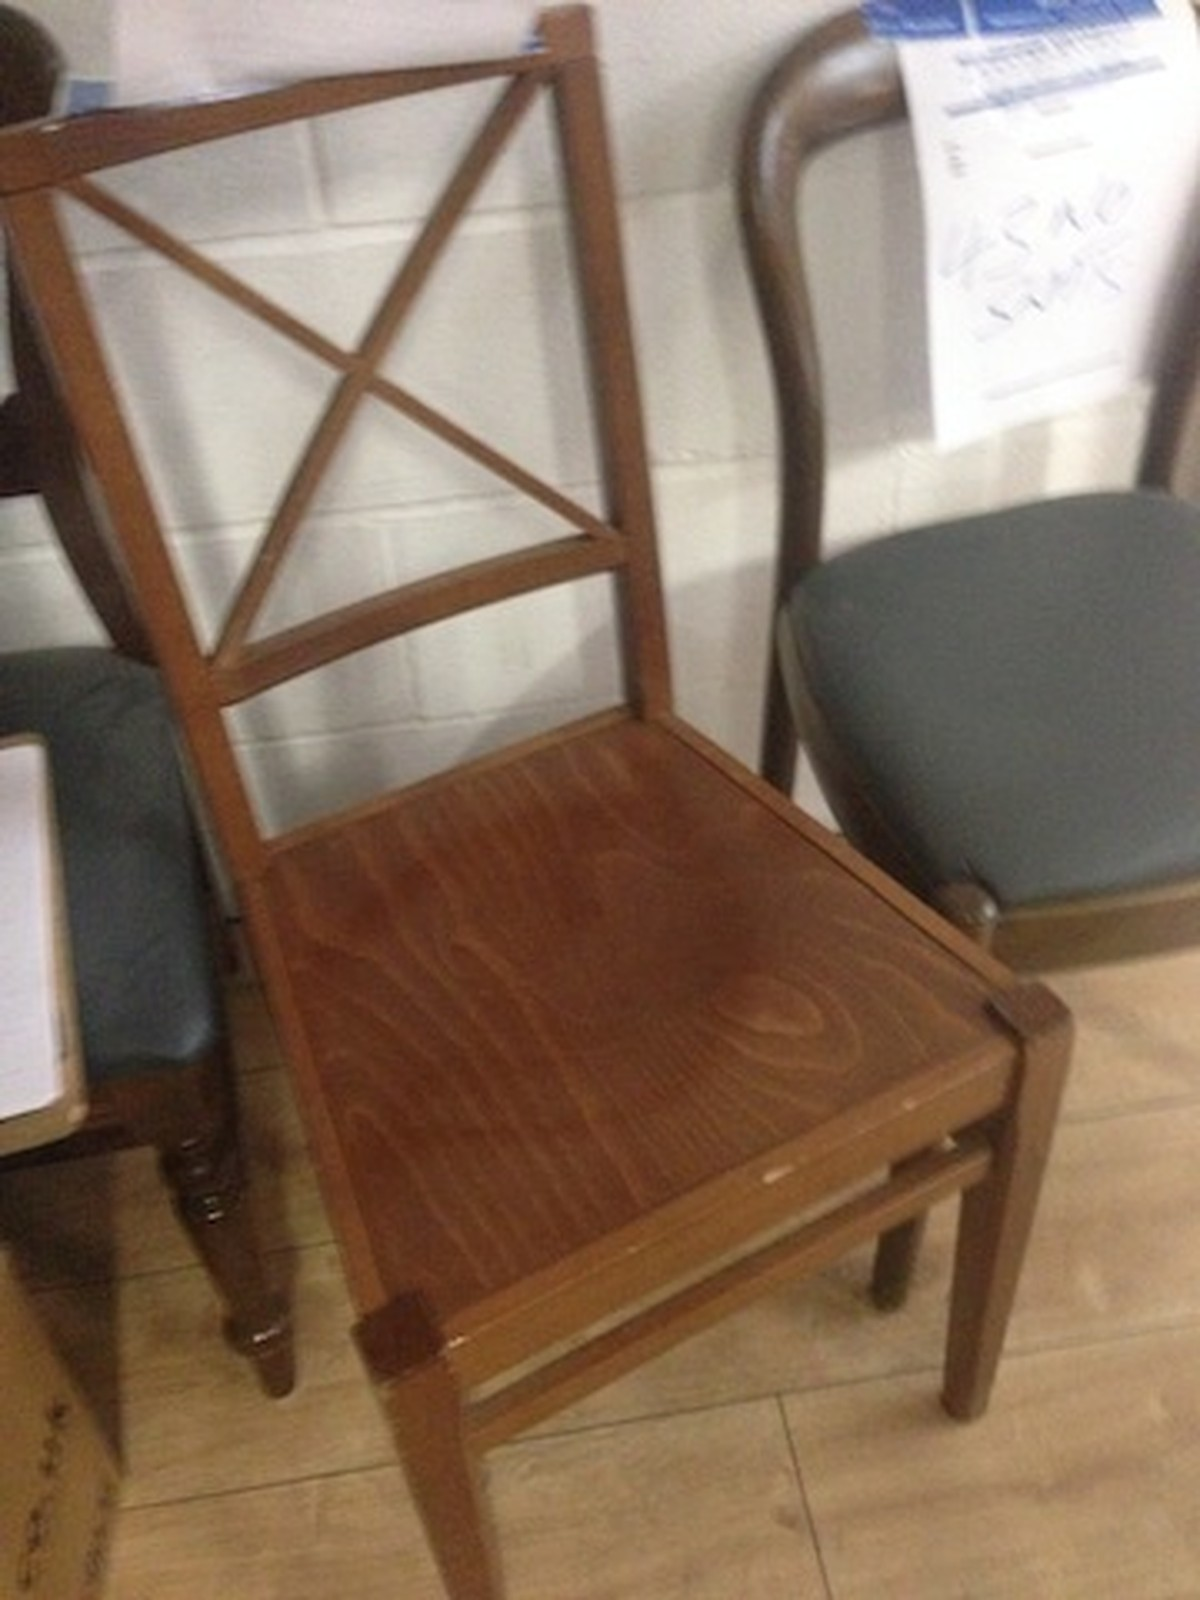 Secondhand Hotel Furniture Dining Chairs 22x Wooden Chair With Square Seat And Back London